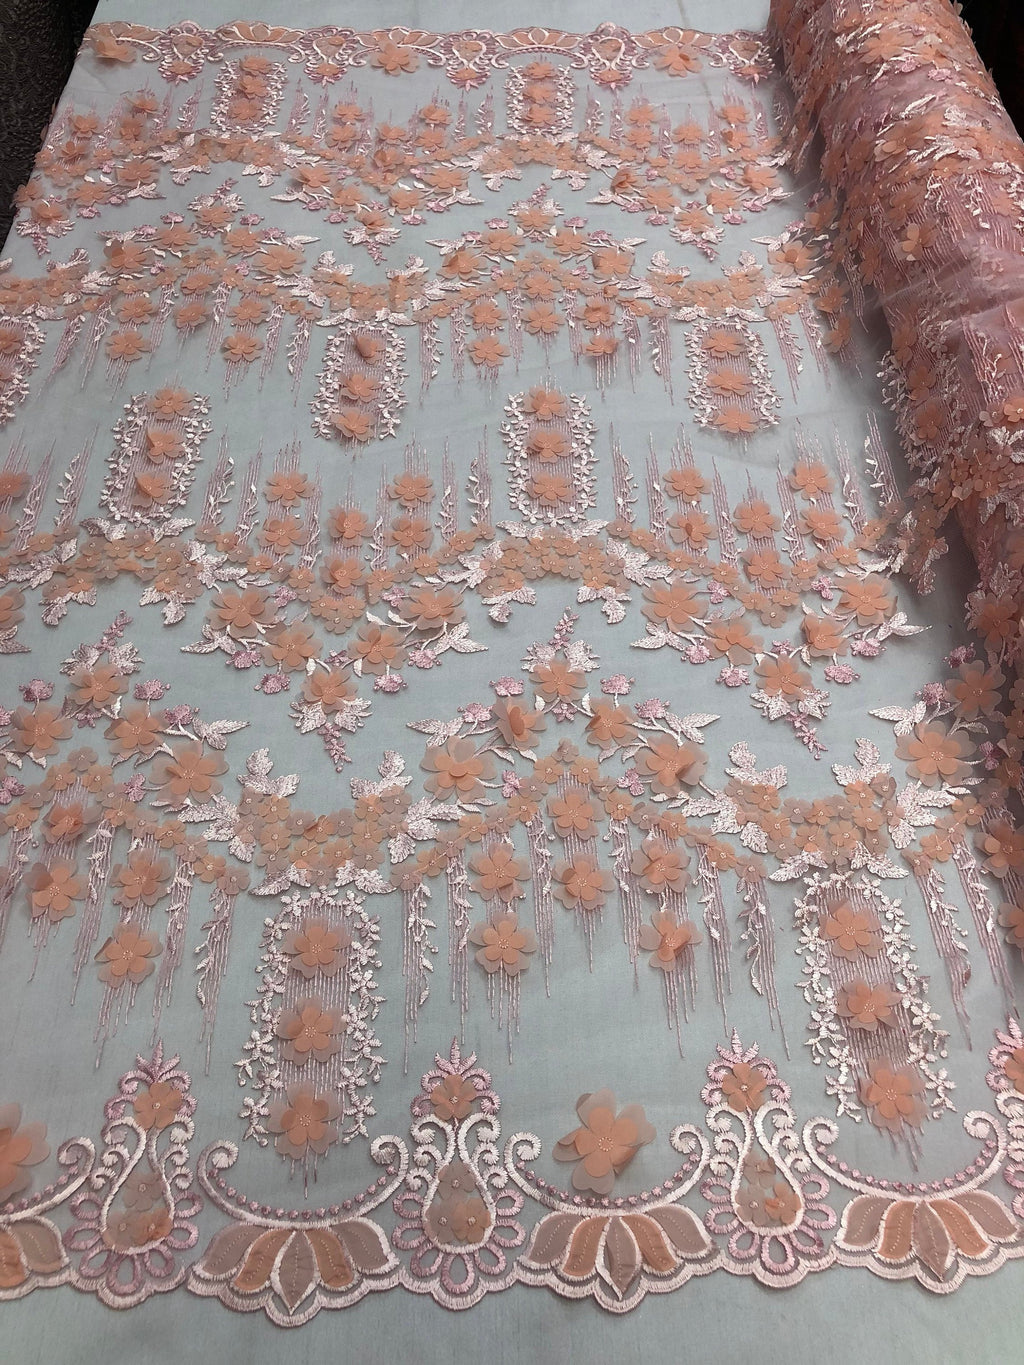 Bridal Wedding Lace Fabric By The Yard - Hand Embroidered Flower 3D PINK / PEACH For Veil Mesh Dress Top Wedding Decoration - KINGDOM OF FABRICS